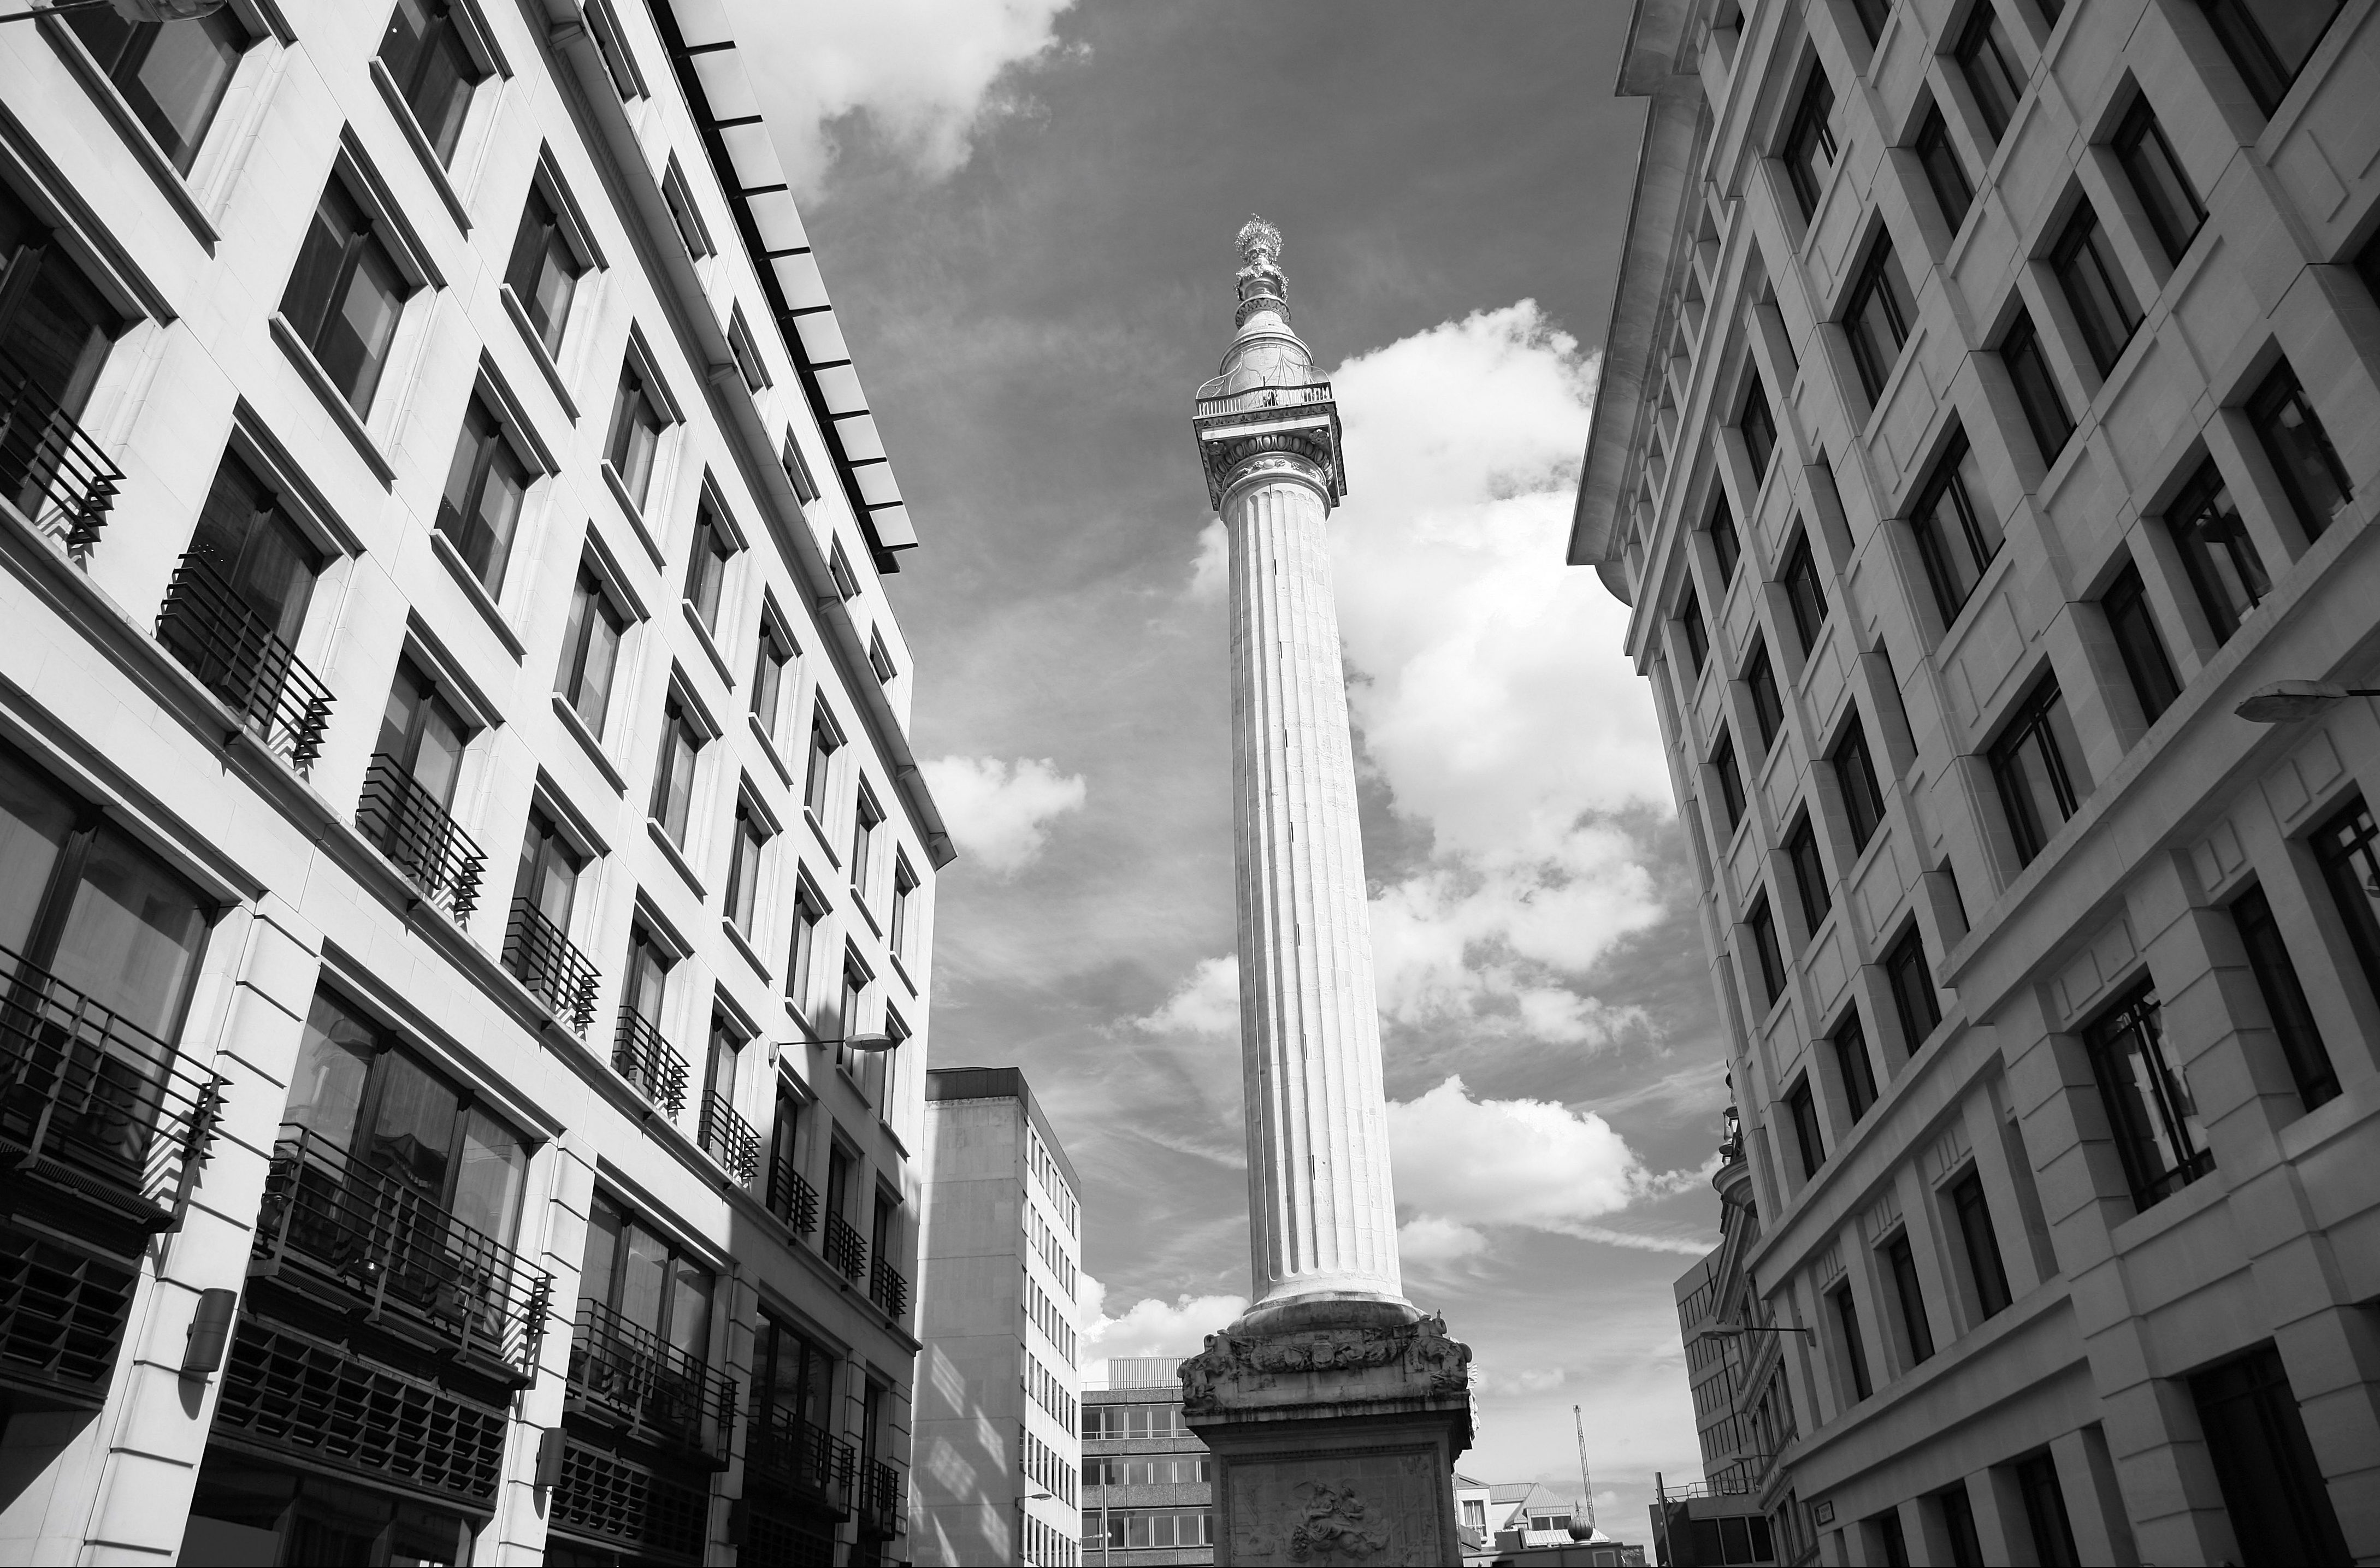 The Monument to commemorate the Great Fire of London in 1666